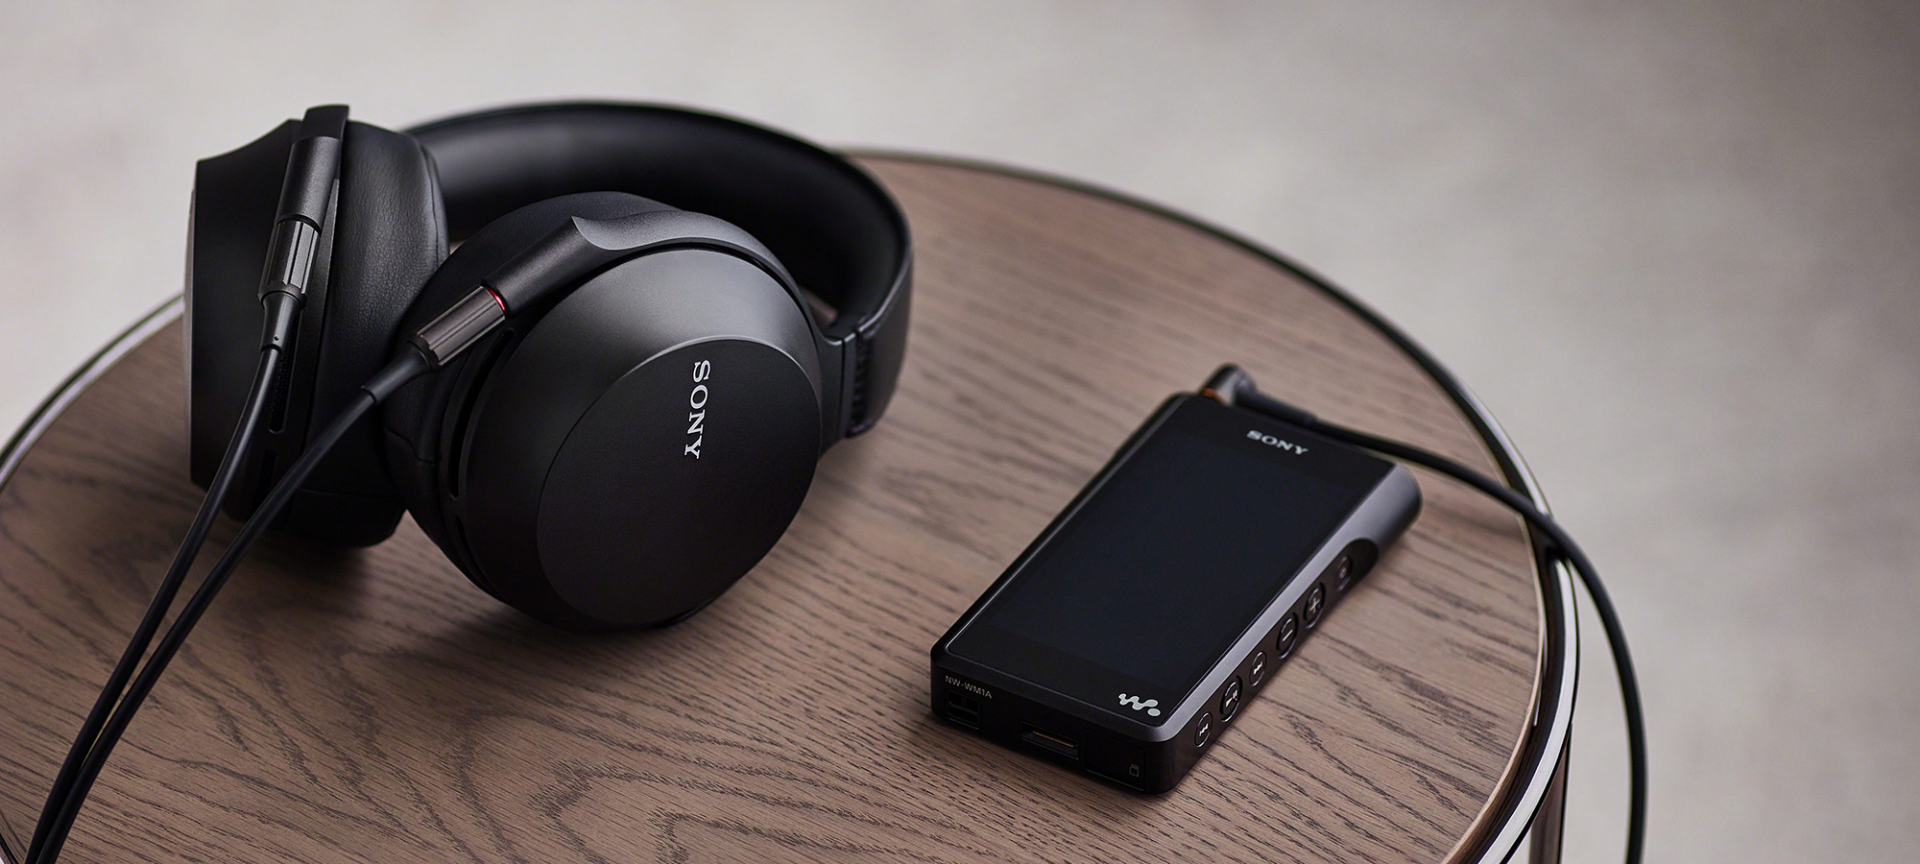 Sony MDR-Z7M2 headphones with Sony NW-WM1A DAP on table